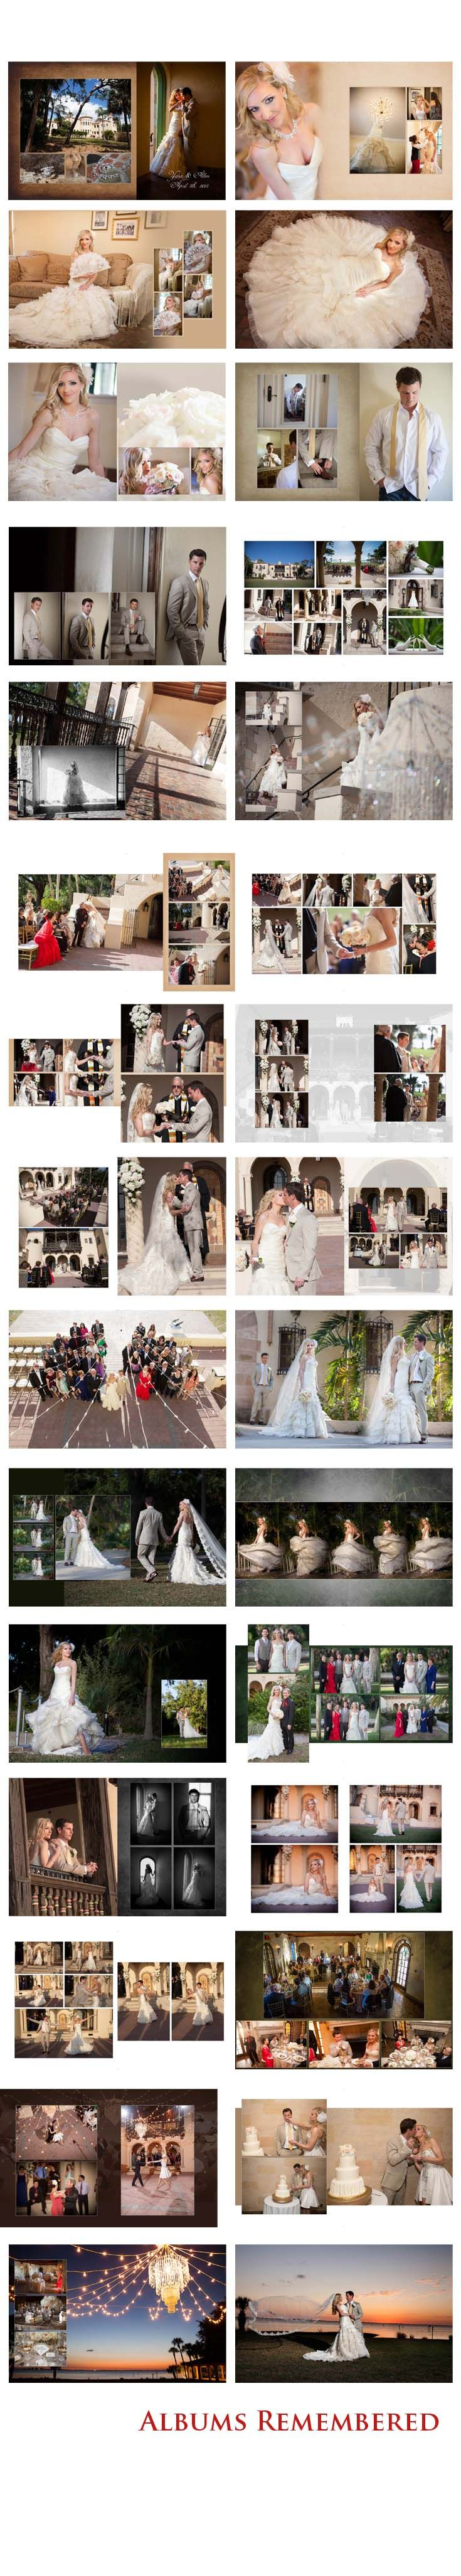 http://www.albumsremembered.com/design-gallery/weddings Free #wedding #album #design